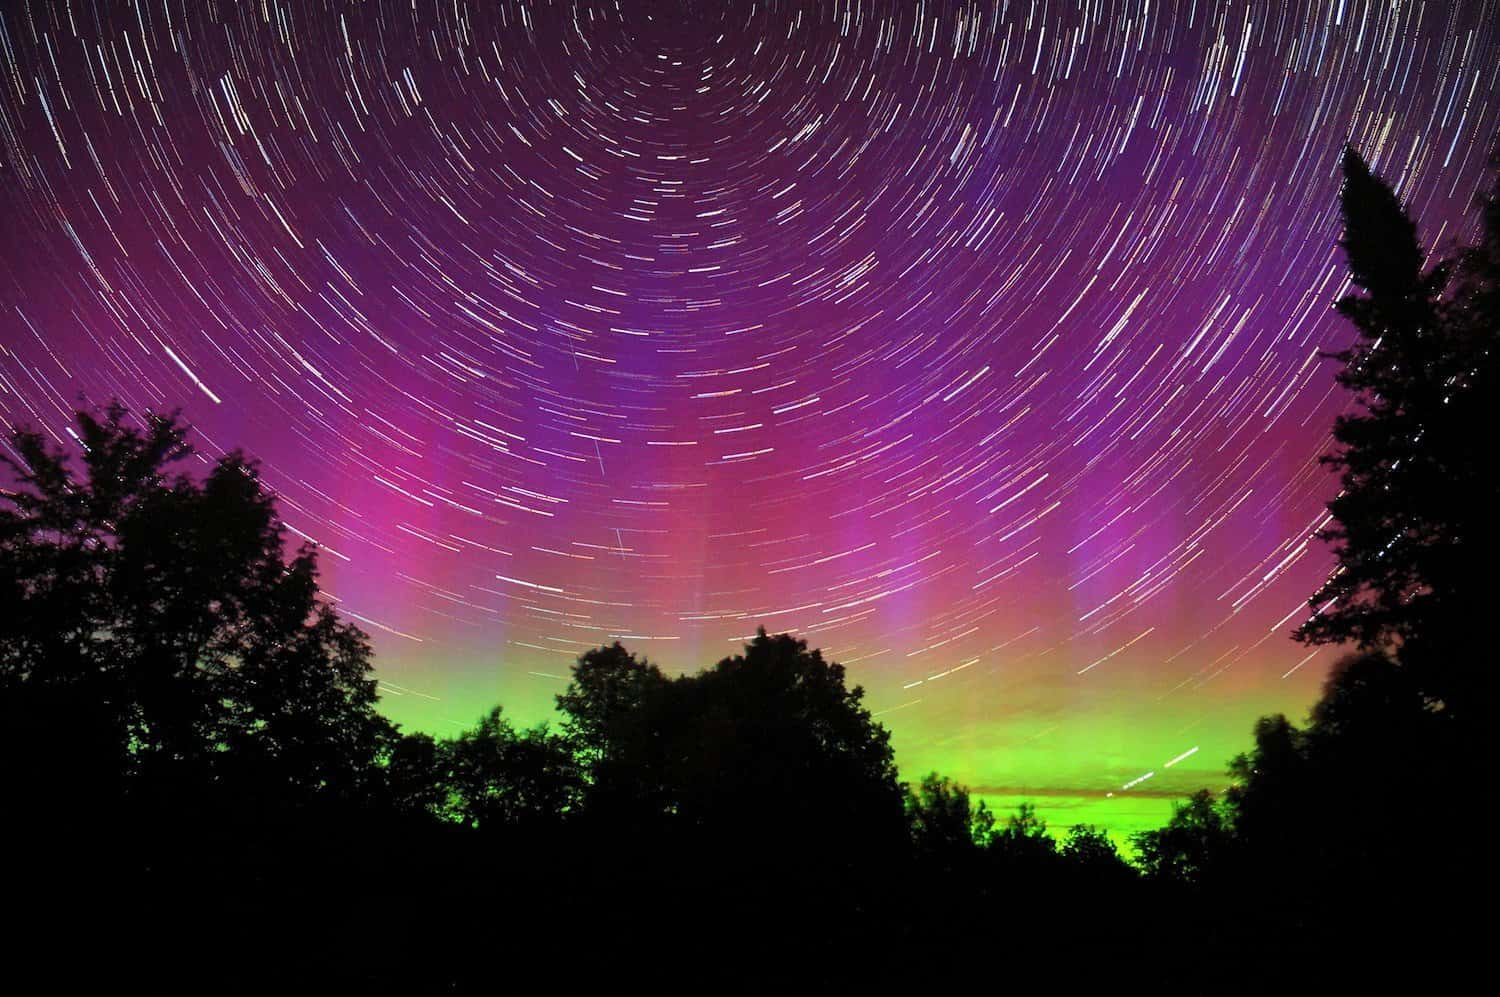 Northern Lights in the USA - Mike Lewinski via Flickr